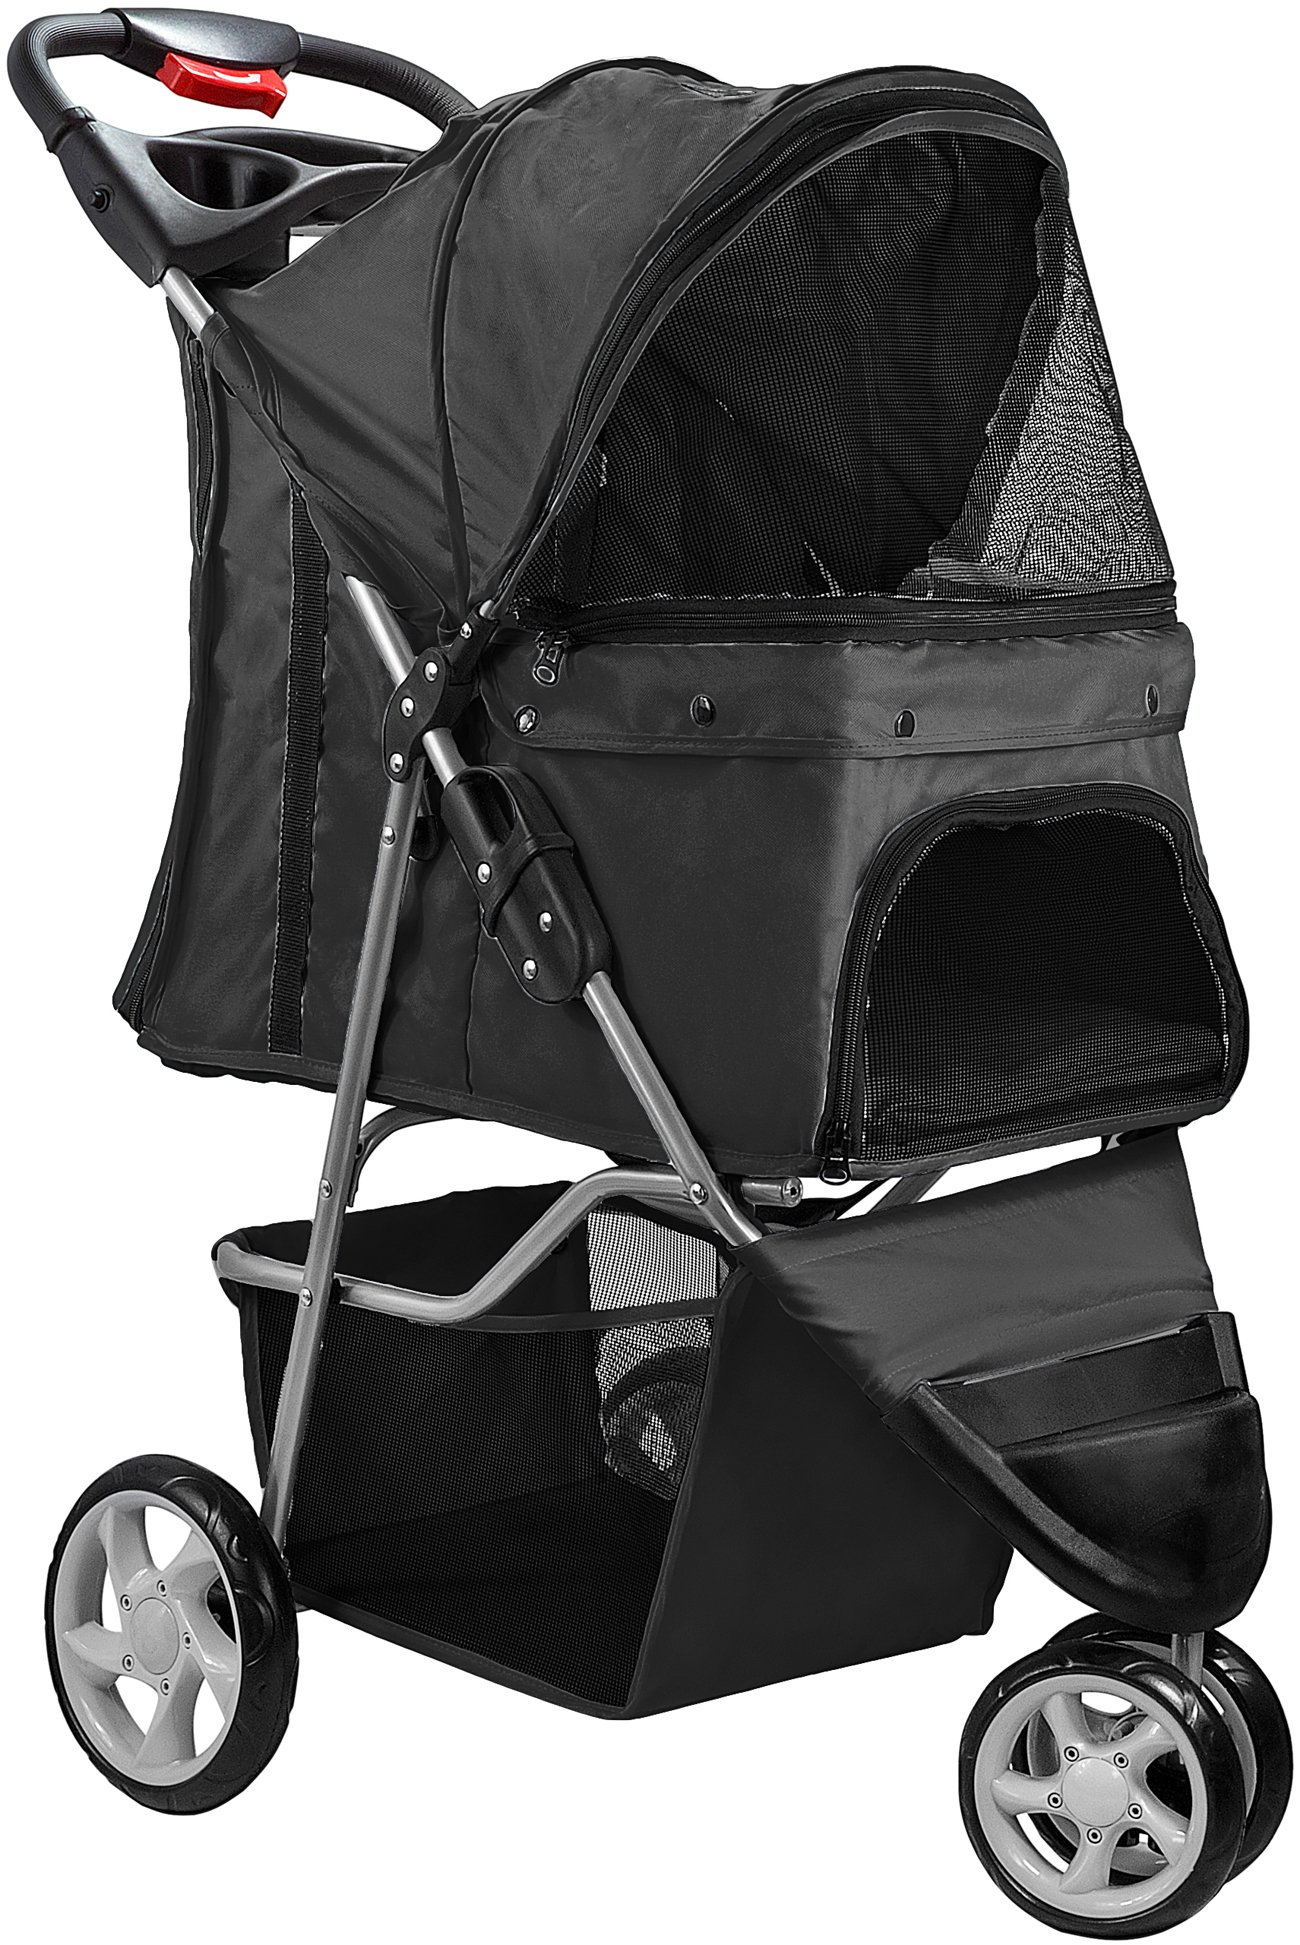 Paws & Pals Double Dog Stroller - Pet Strollers for Small Medium Dogs Cats Two Doggy Puppy or 2 Kitty Cat Carriage Buggy - Fold-able Animal Pets Doggie Cart Carriages by Paws & Pals